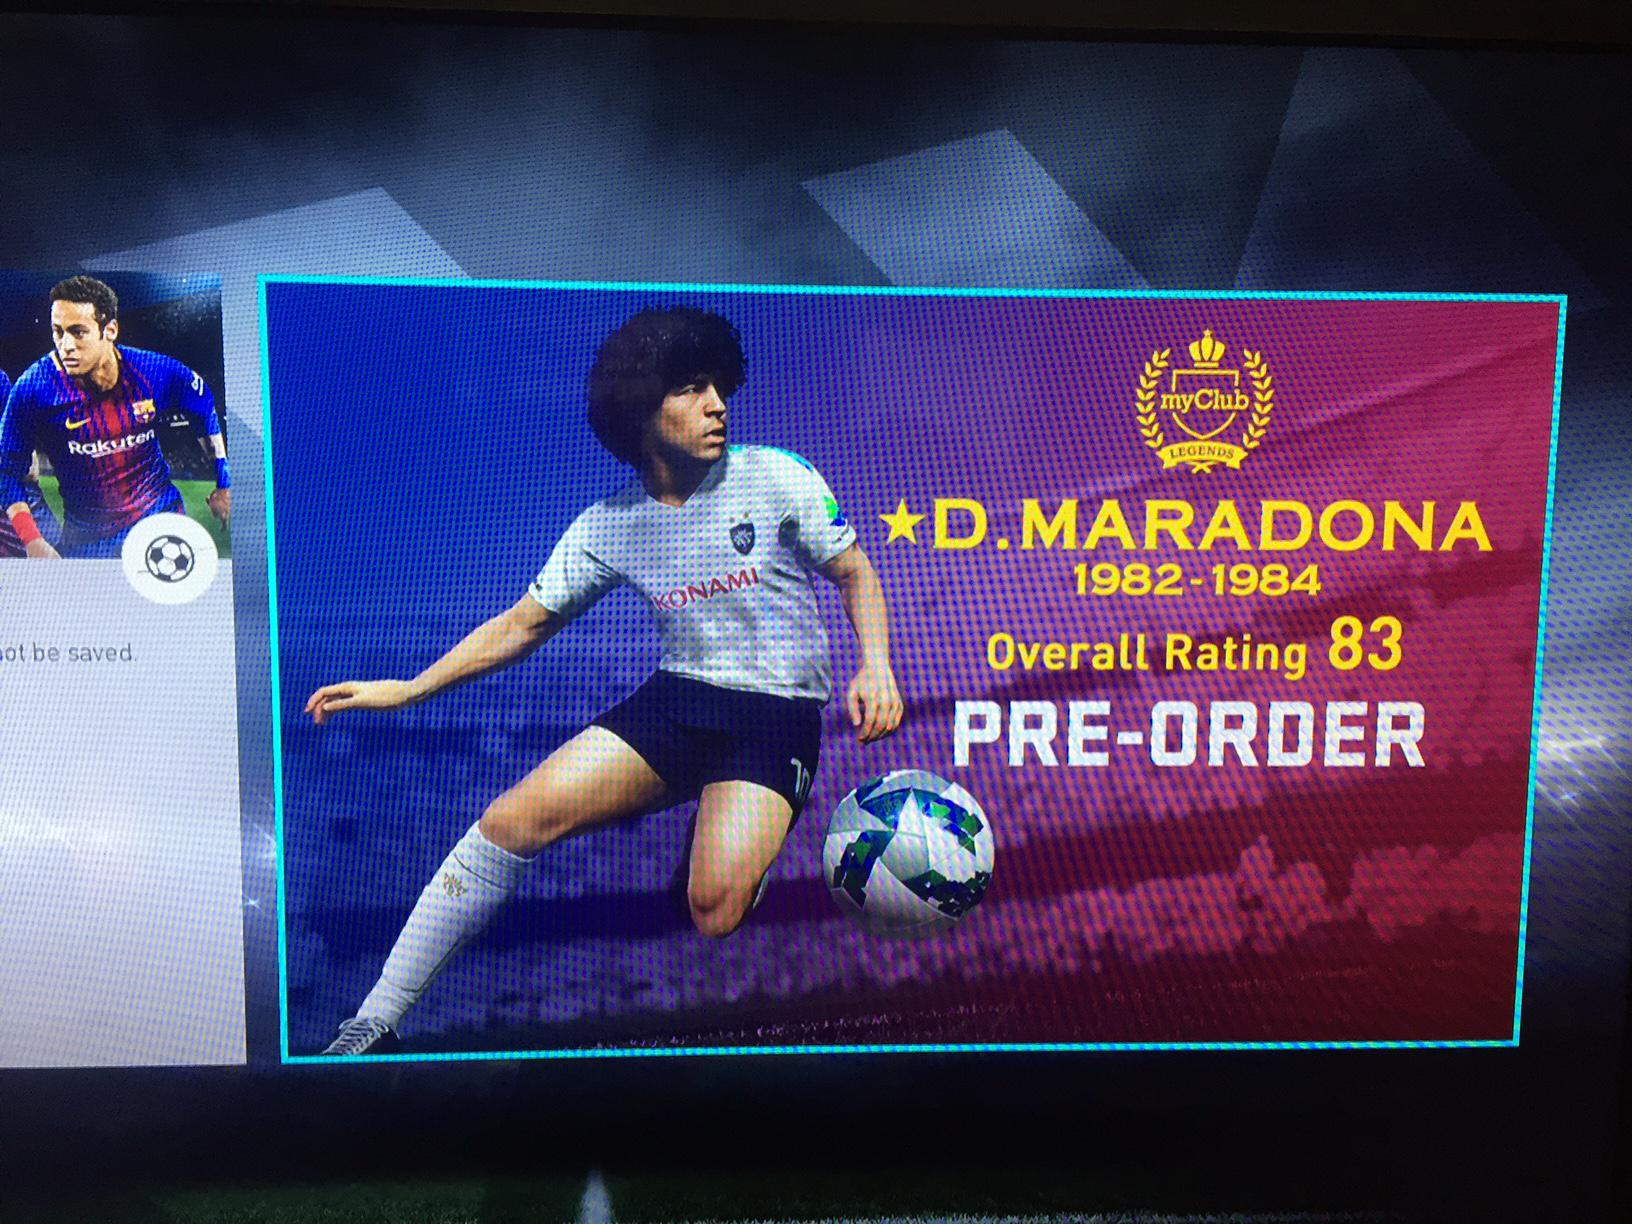 According to the PES 2018 demo screen, Maradona only has a 83 rating